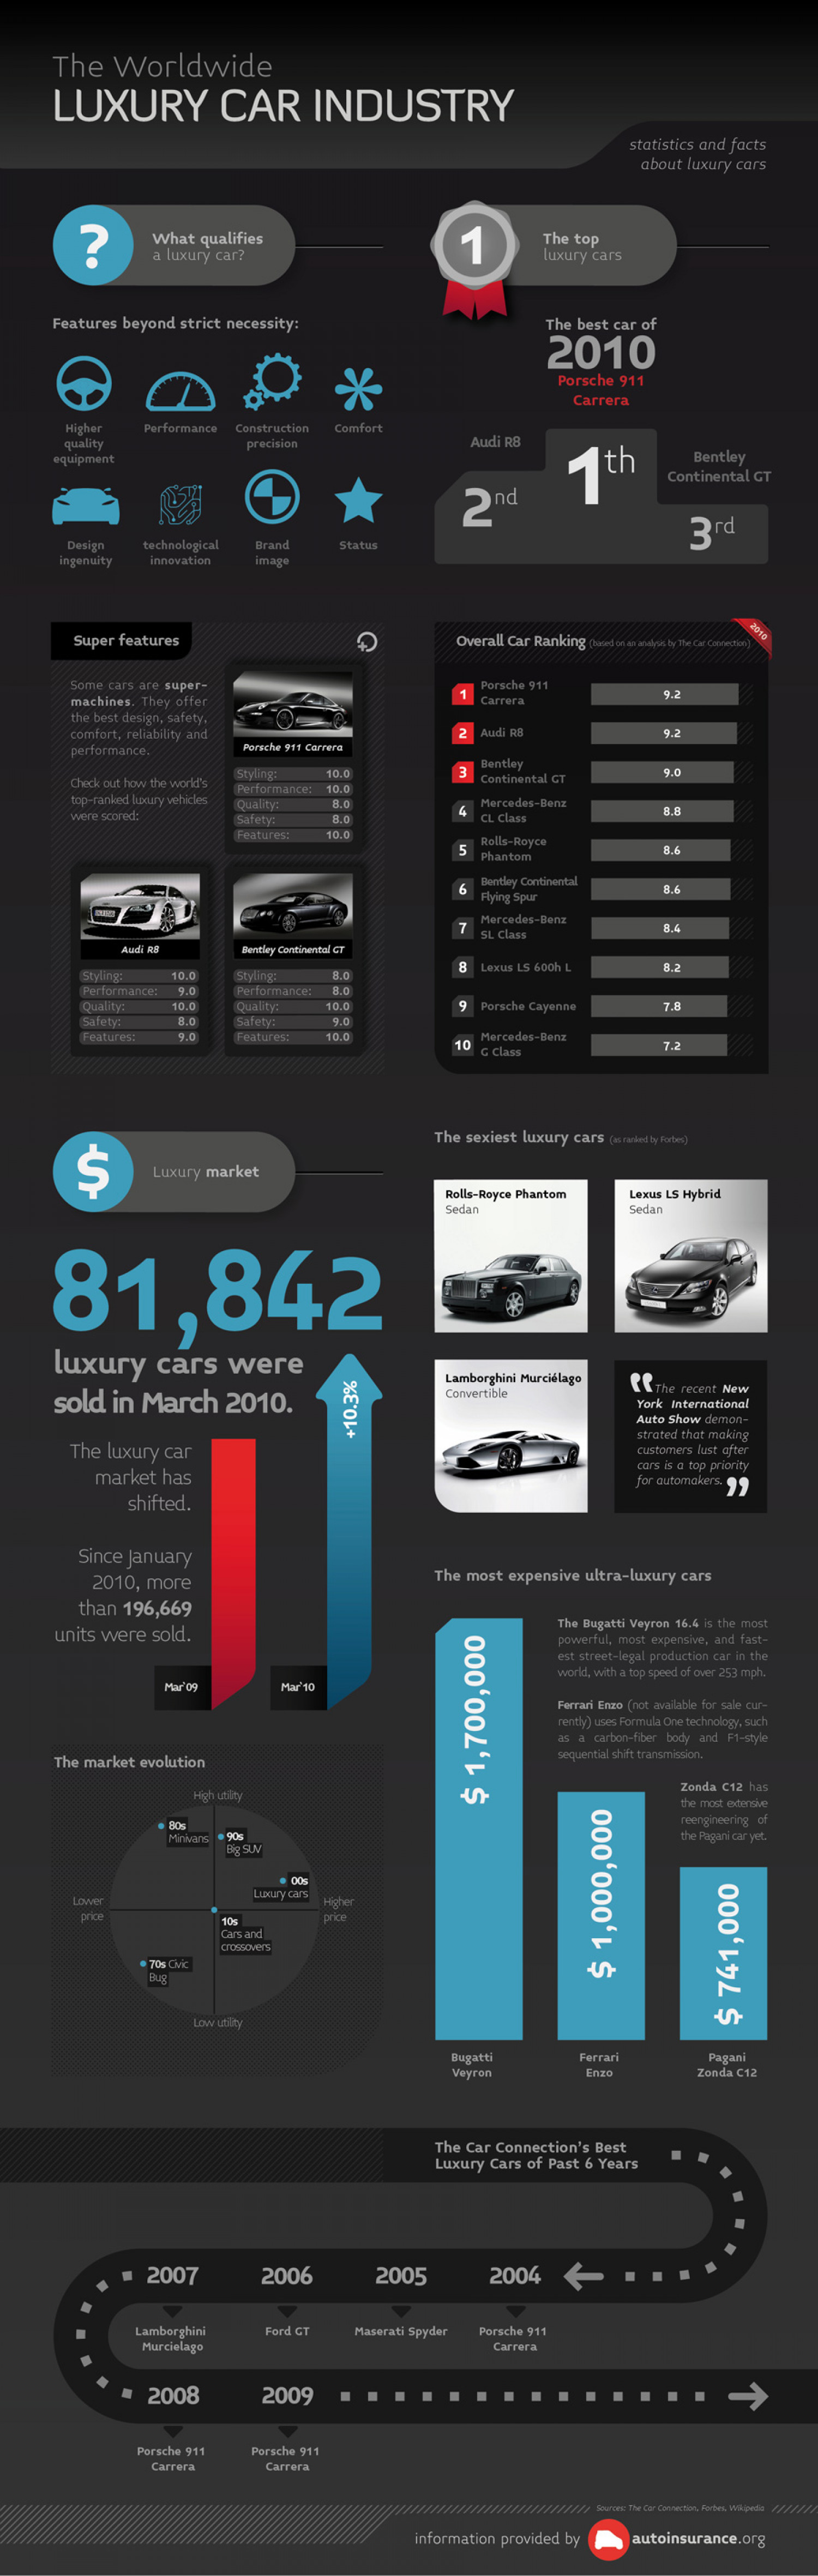 The Luxury Car Industry Infographic